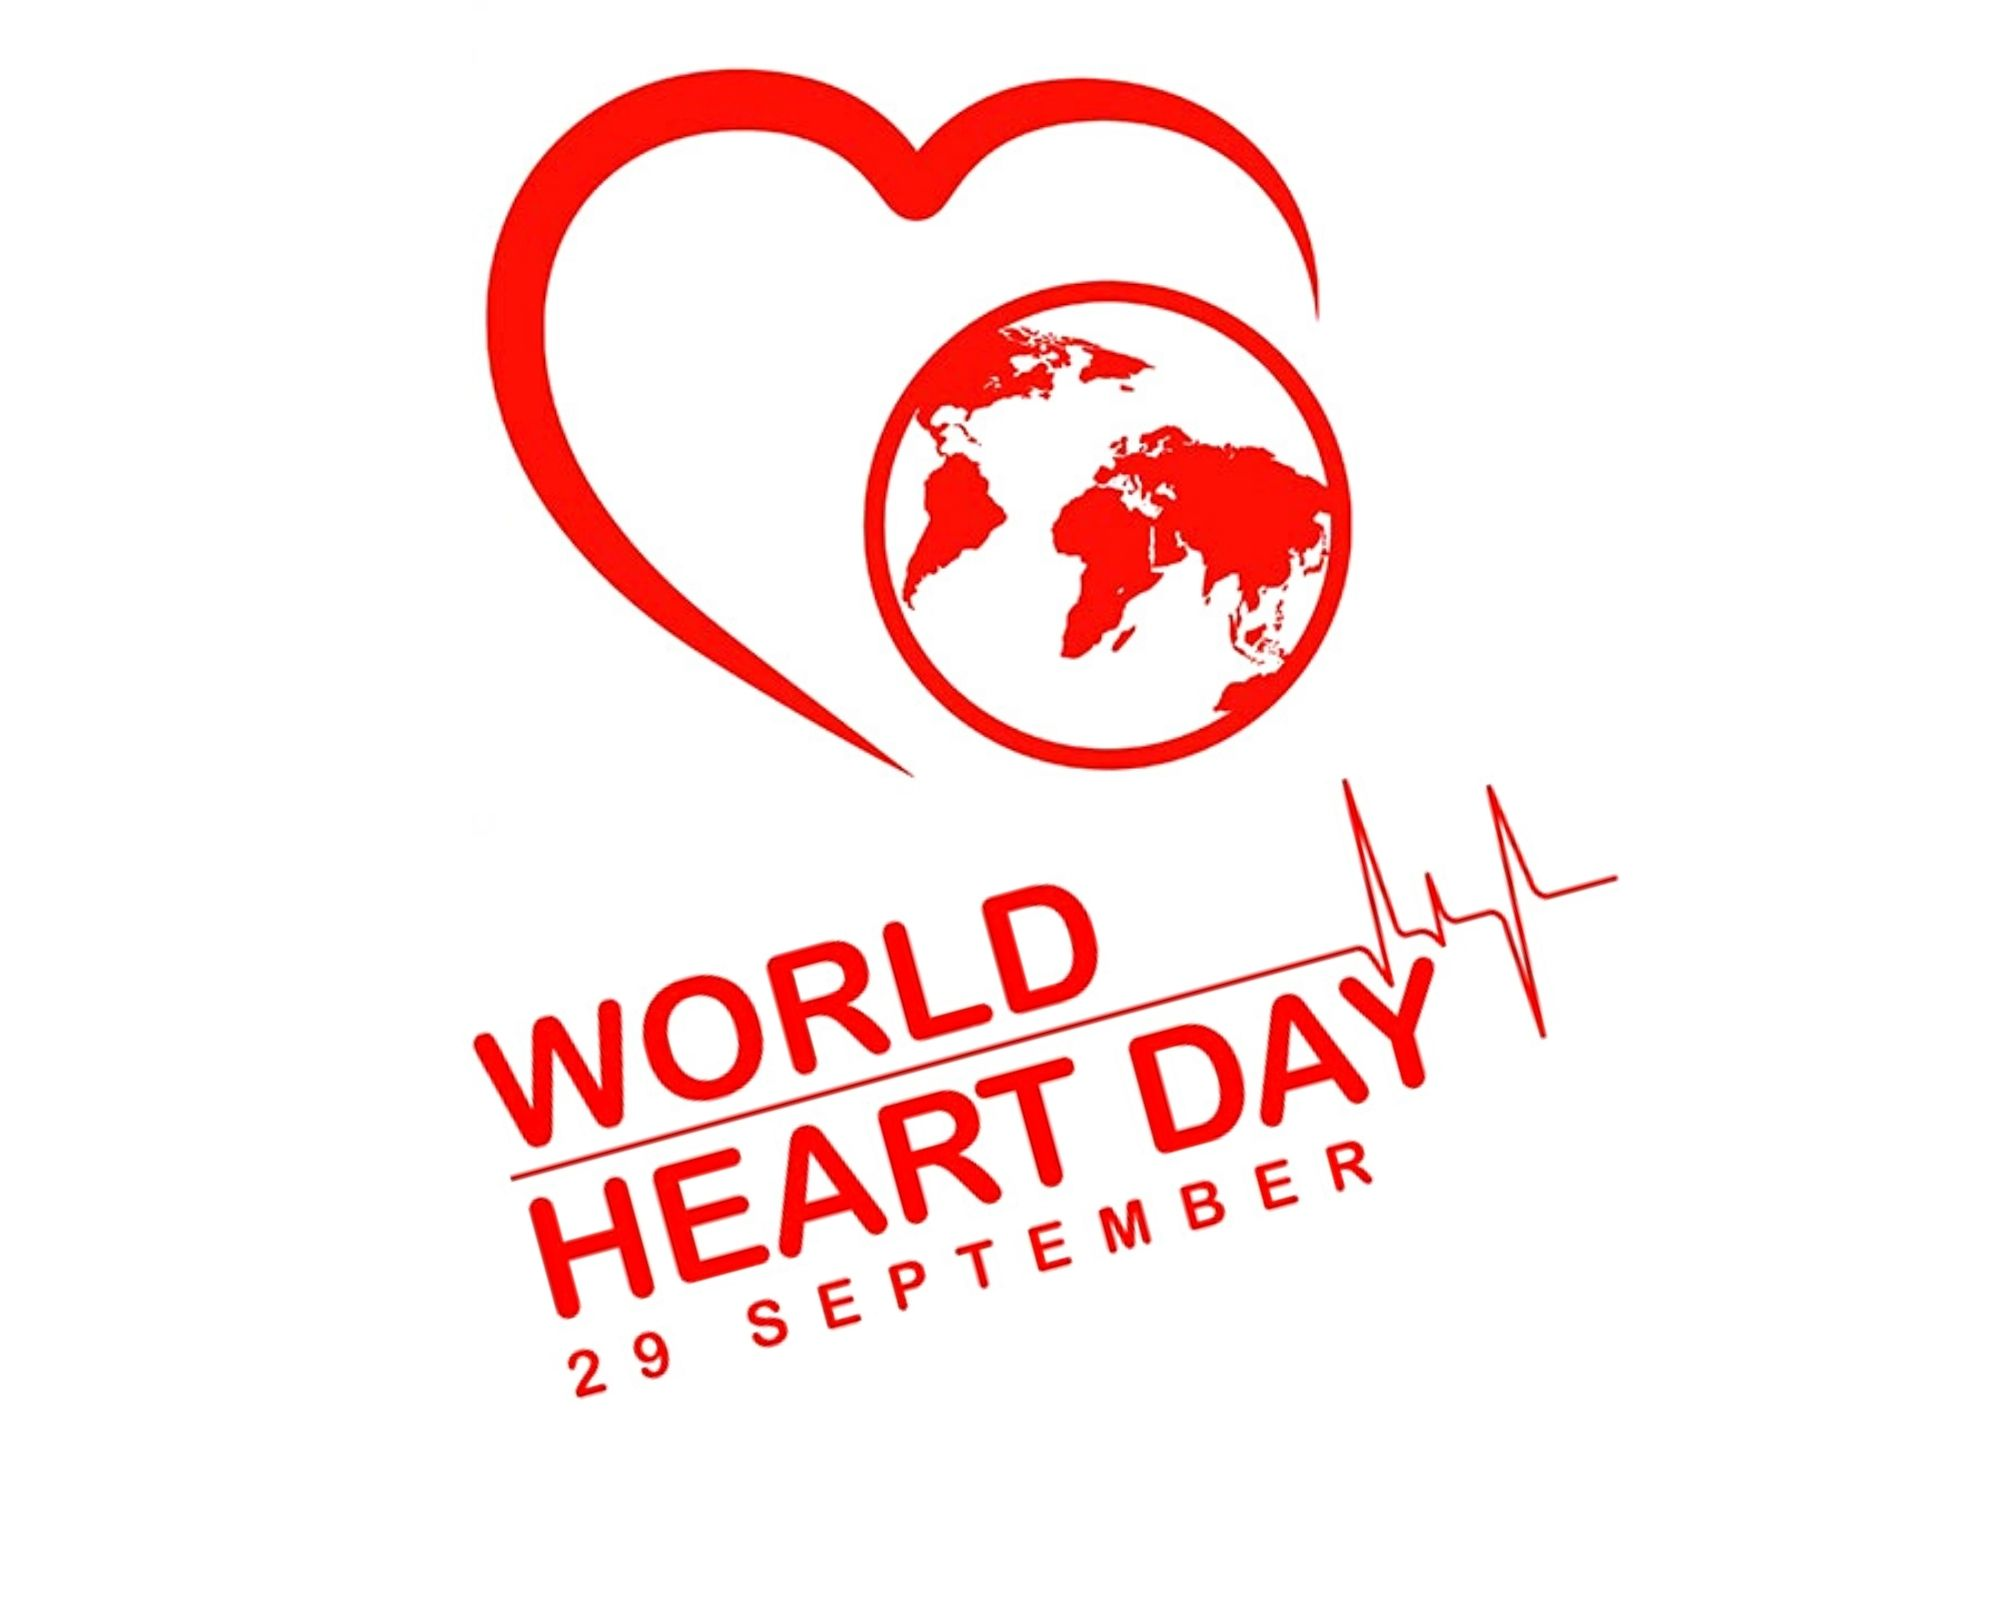 World Heart Day Messages